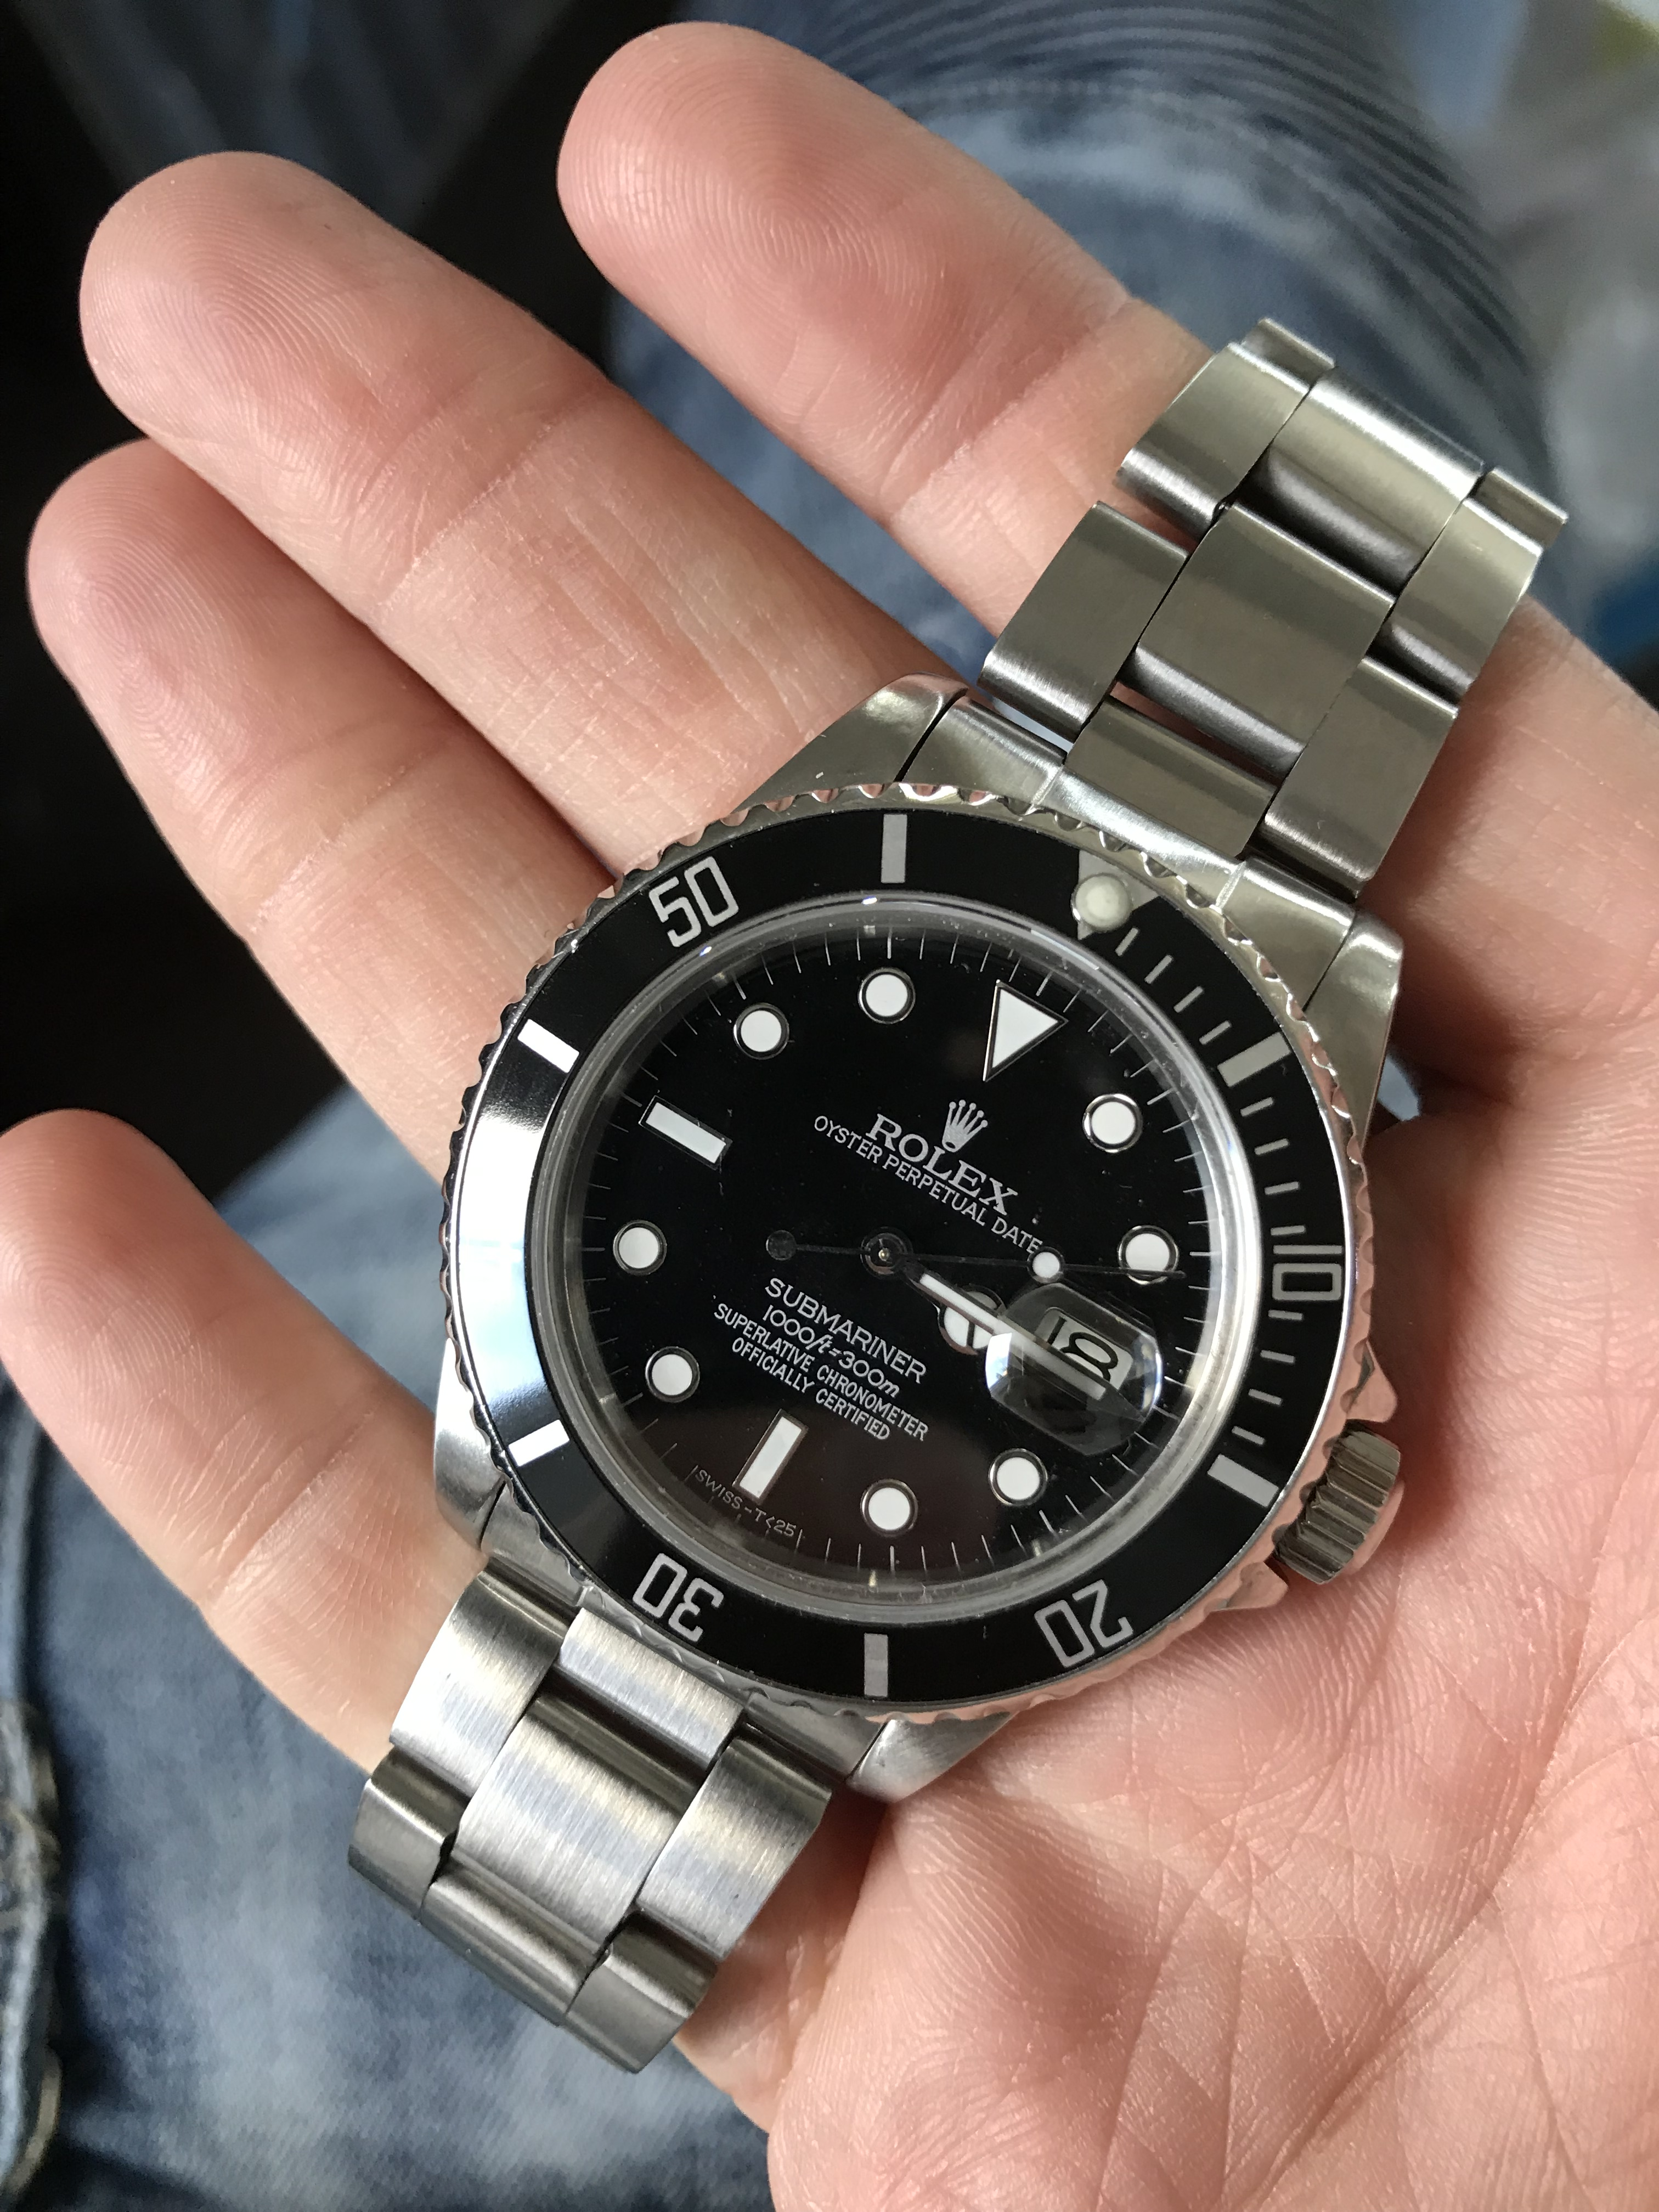 Rolex 16800 Submariner Collectible Watch Review